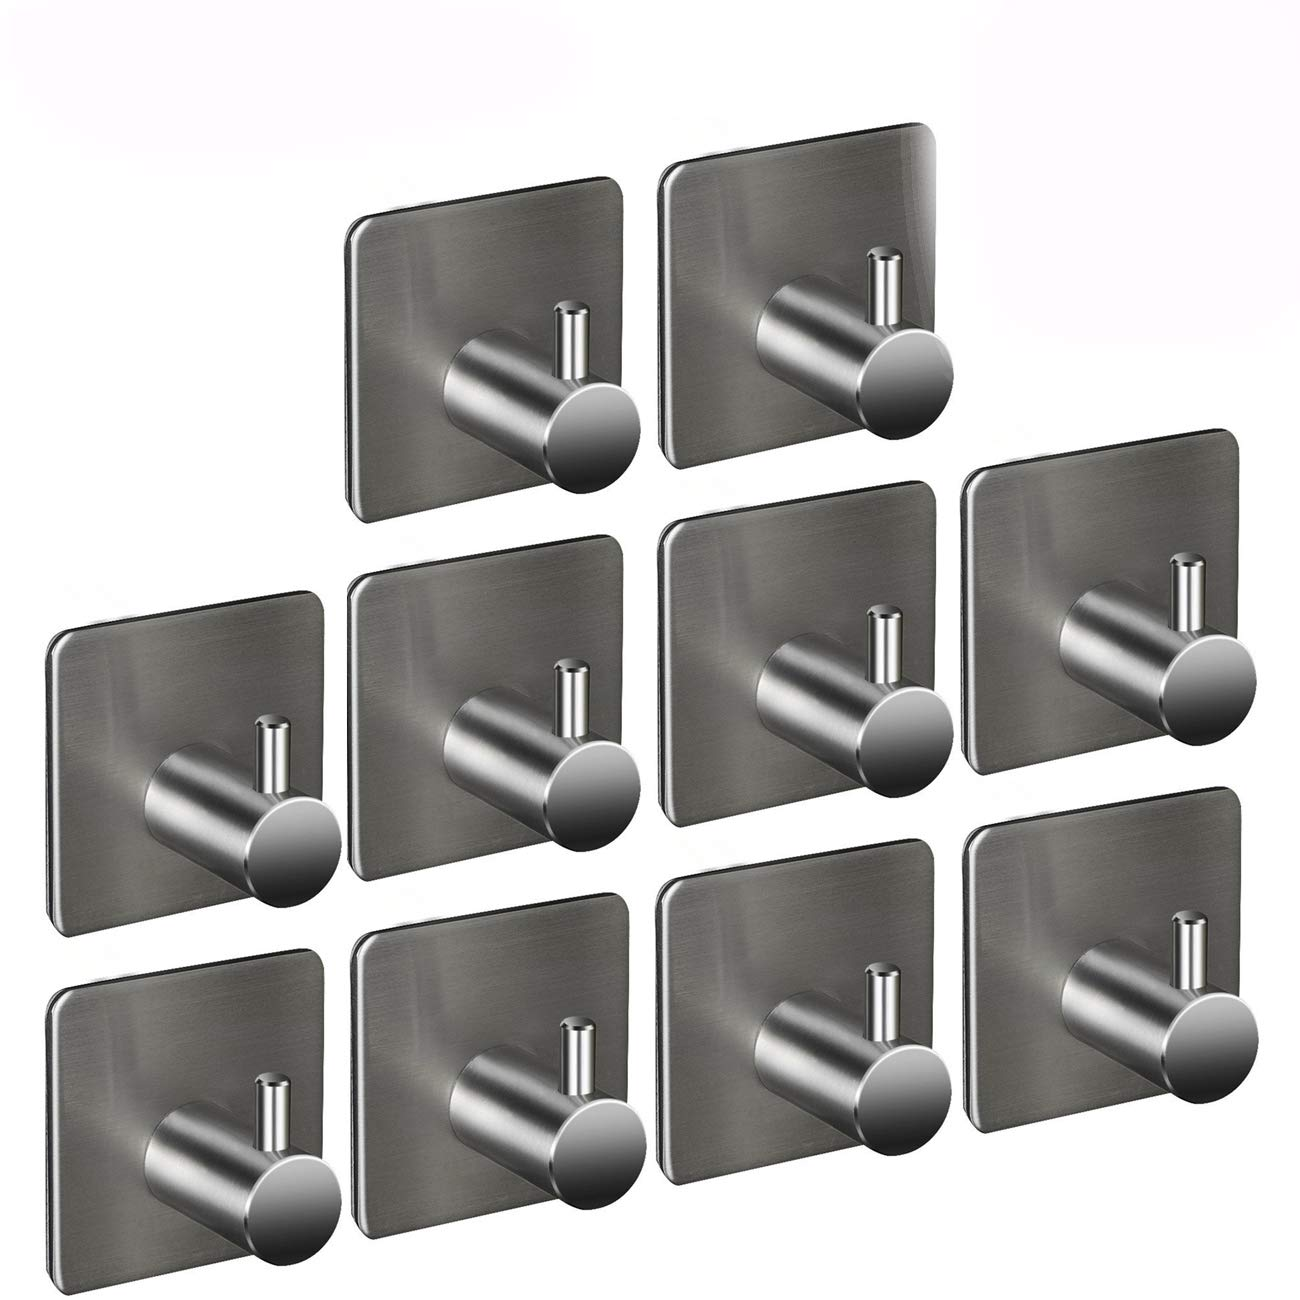 10 Pack of Self Adhesive Hooks, Heavy Duty Bath Towel Hooks Stainless Steel Hat Towel Robe Coat Stick-up Stainless Steel Hanger for Kitchen Bathrooms Lavatory Closets, Max 8kg Towel Rail, Water and Rust Proof Laixiu